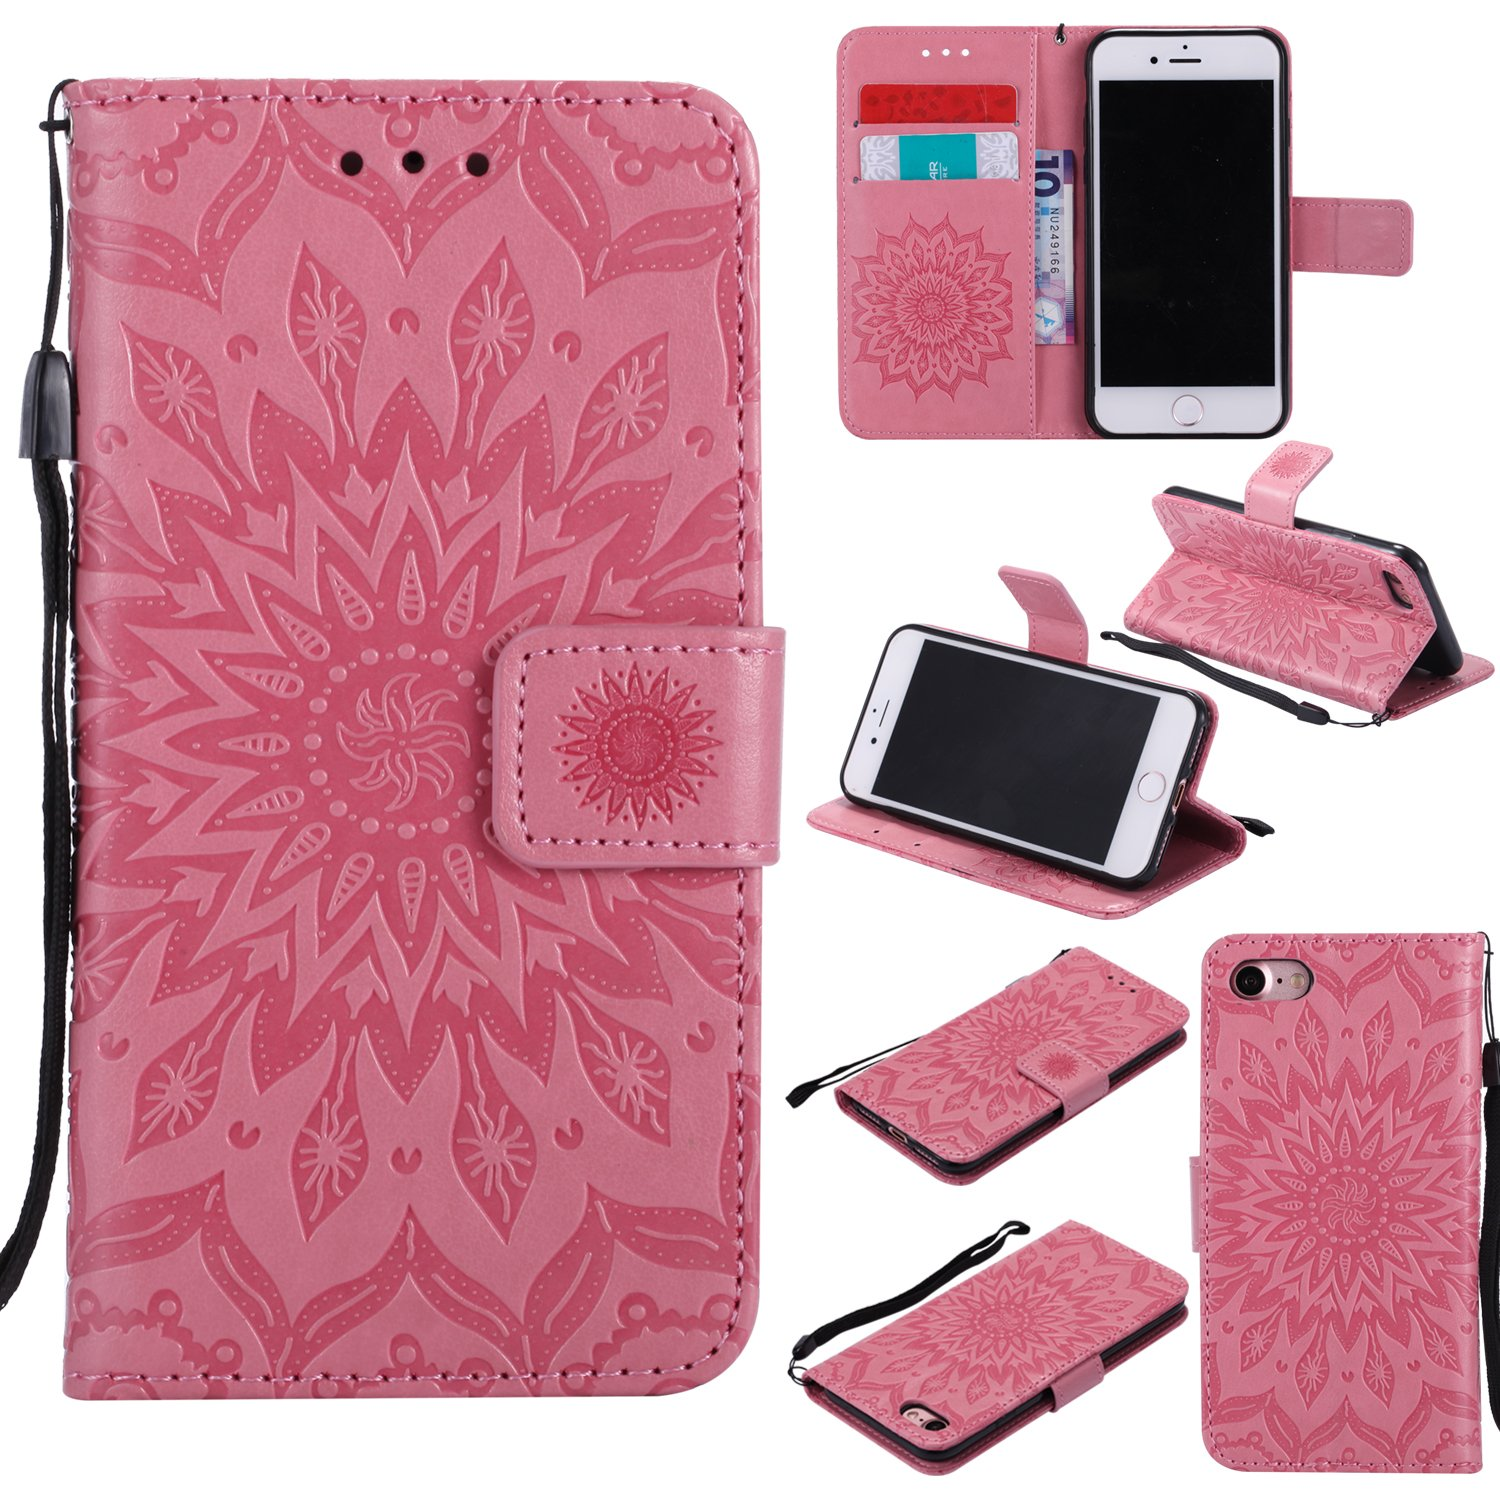 Cmeka 3D Sunflower Wallet Case for iPhone 7 / iPhone 8 with Credit Card Slots Holder Magnetic Closure Slim Flip Leather Kickstand Function Protective Case Pink